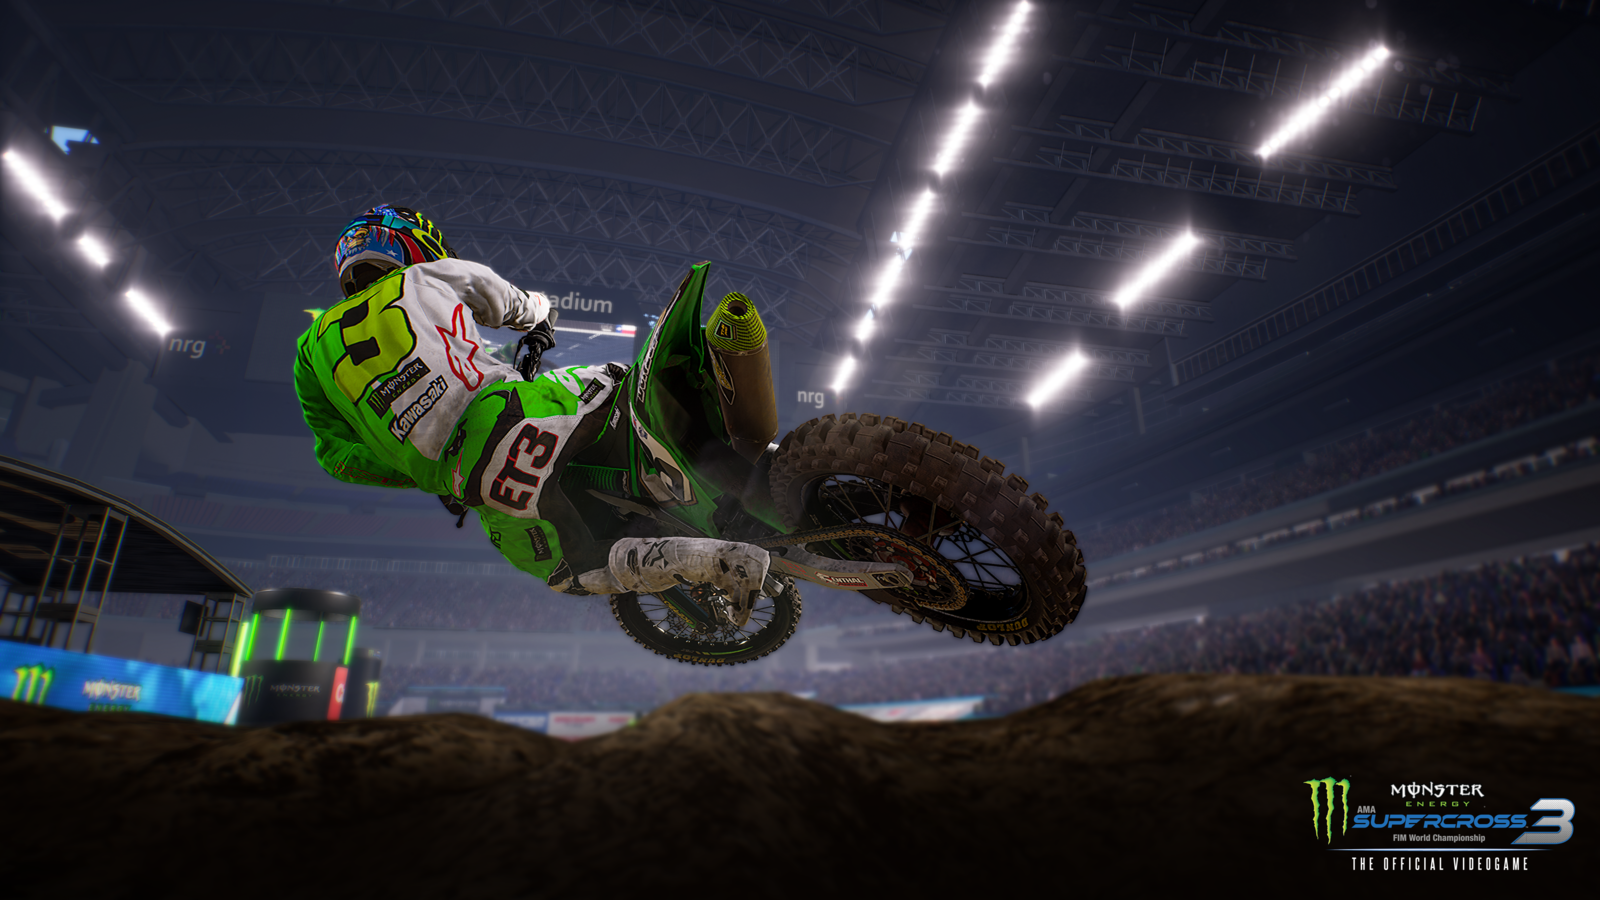 Monster Energy Supercross - The Official Videogame 3 - Nintendo Switch